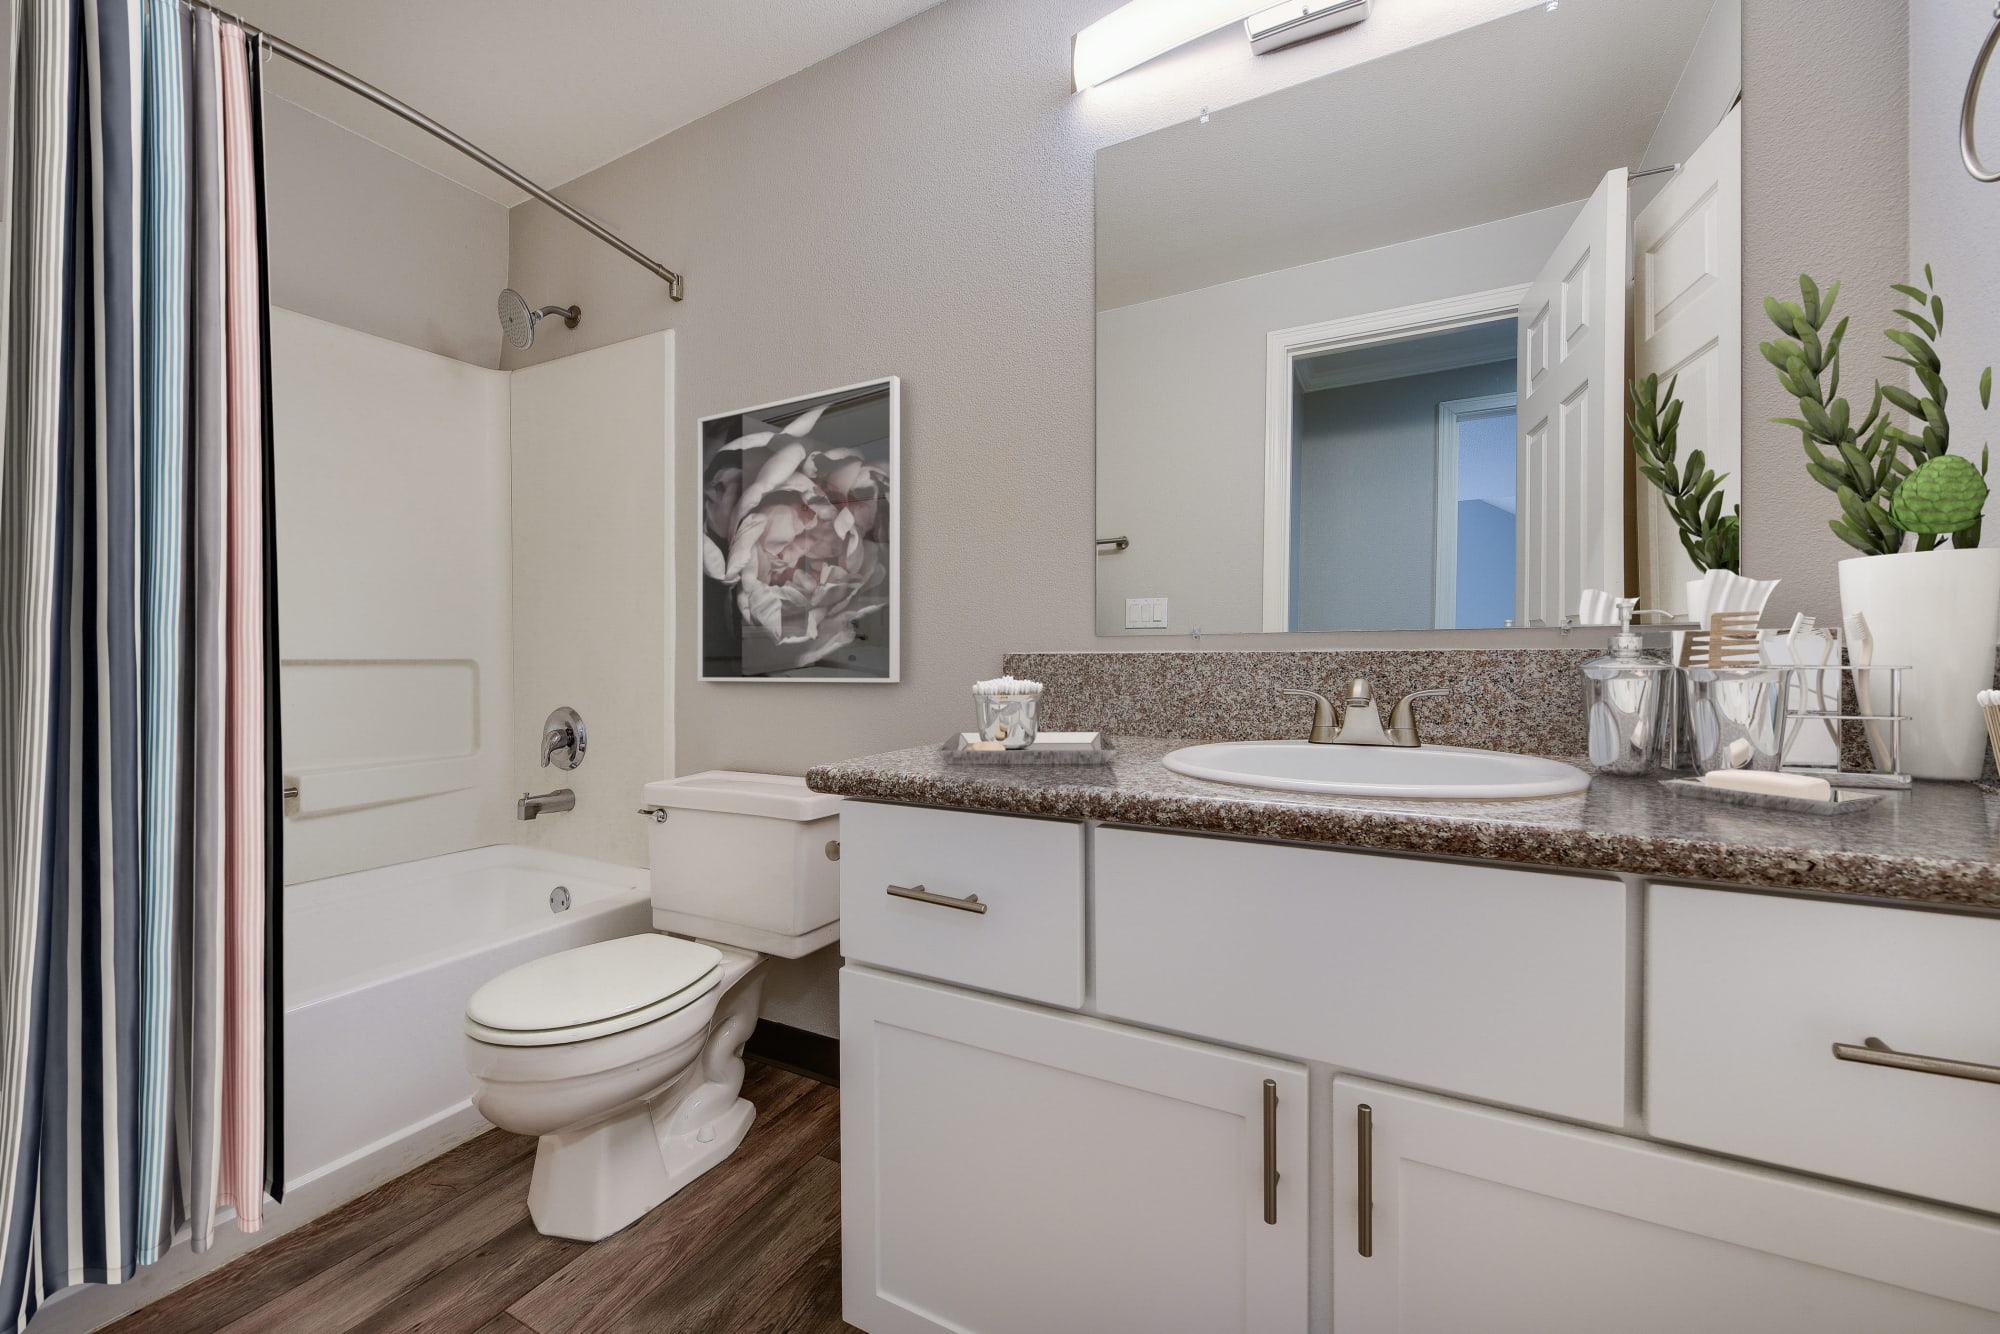 Renovated bathroom with white cabinets and a tub at Walnut Grove Landing Apartments in Vancouver, Washington